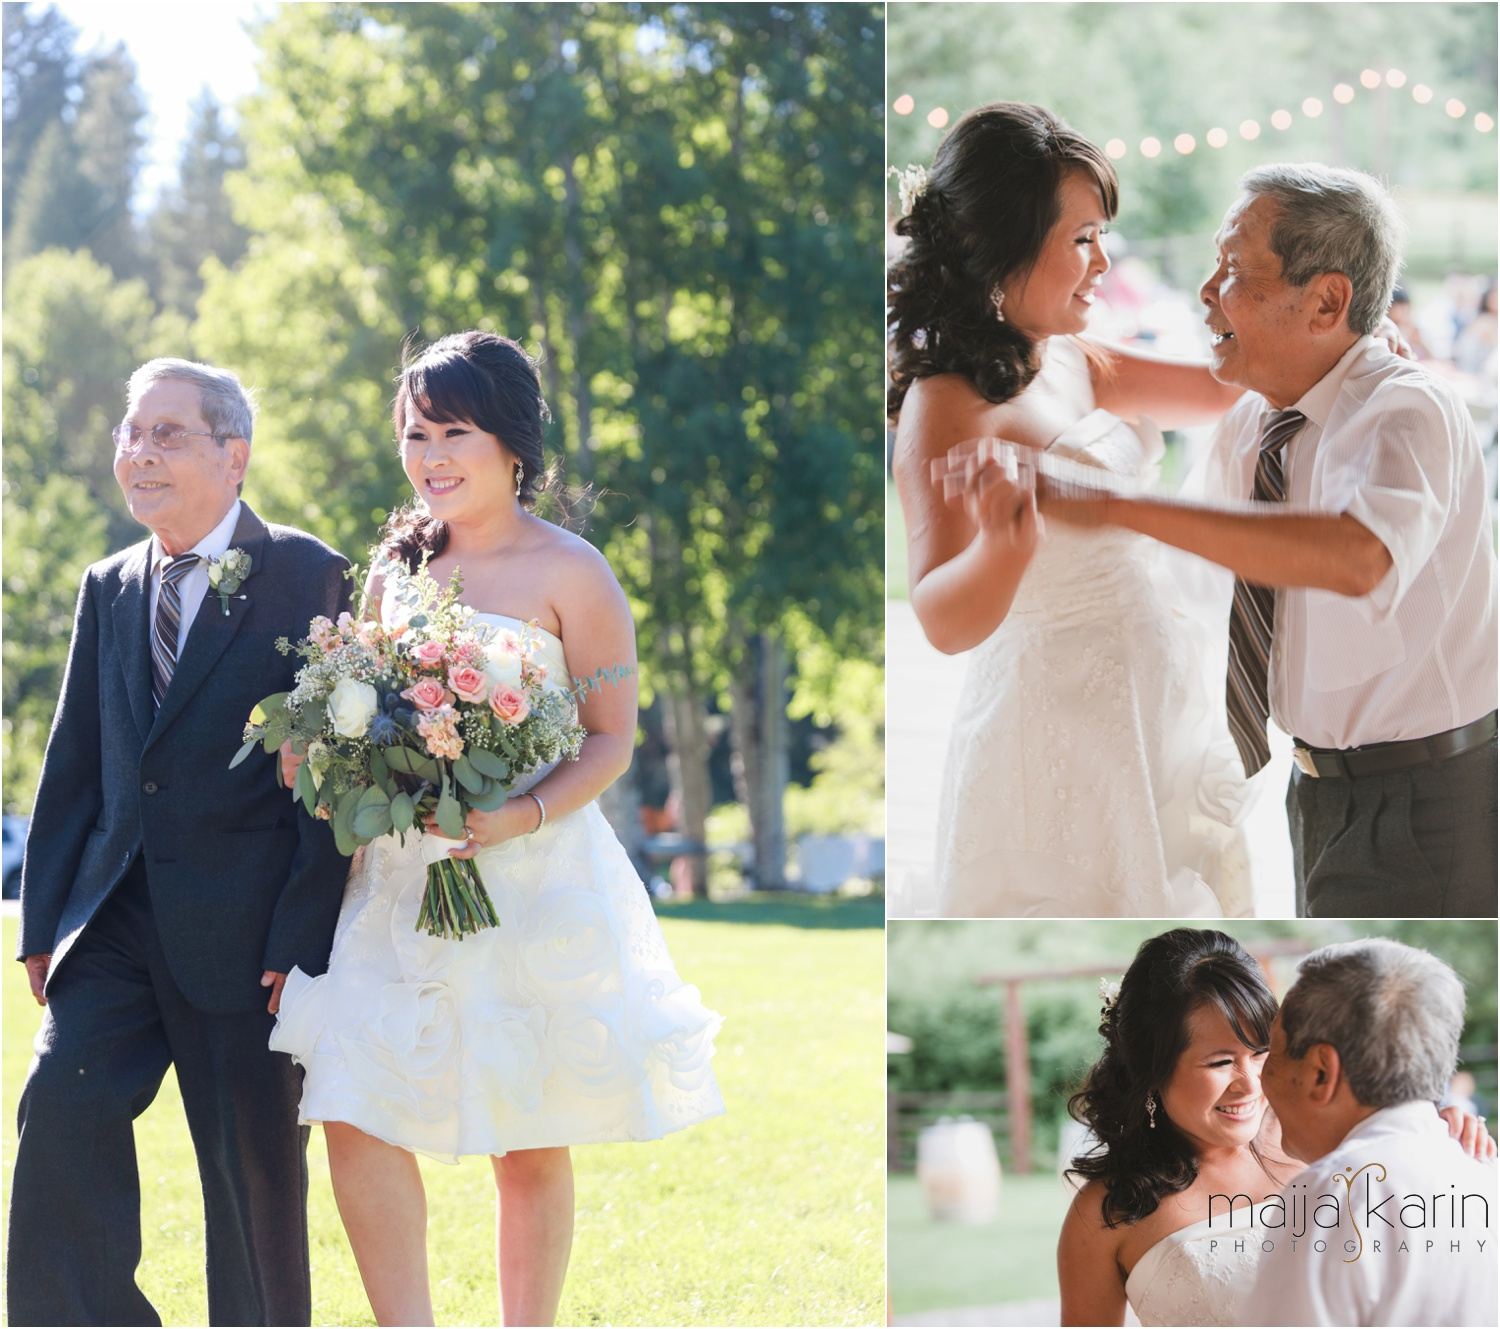 Mountain-Springs-Lodge-Leavenworth-Washington-Wedding-Photographer-Majiin-Karin-Photography_69.jpg